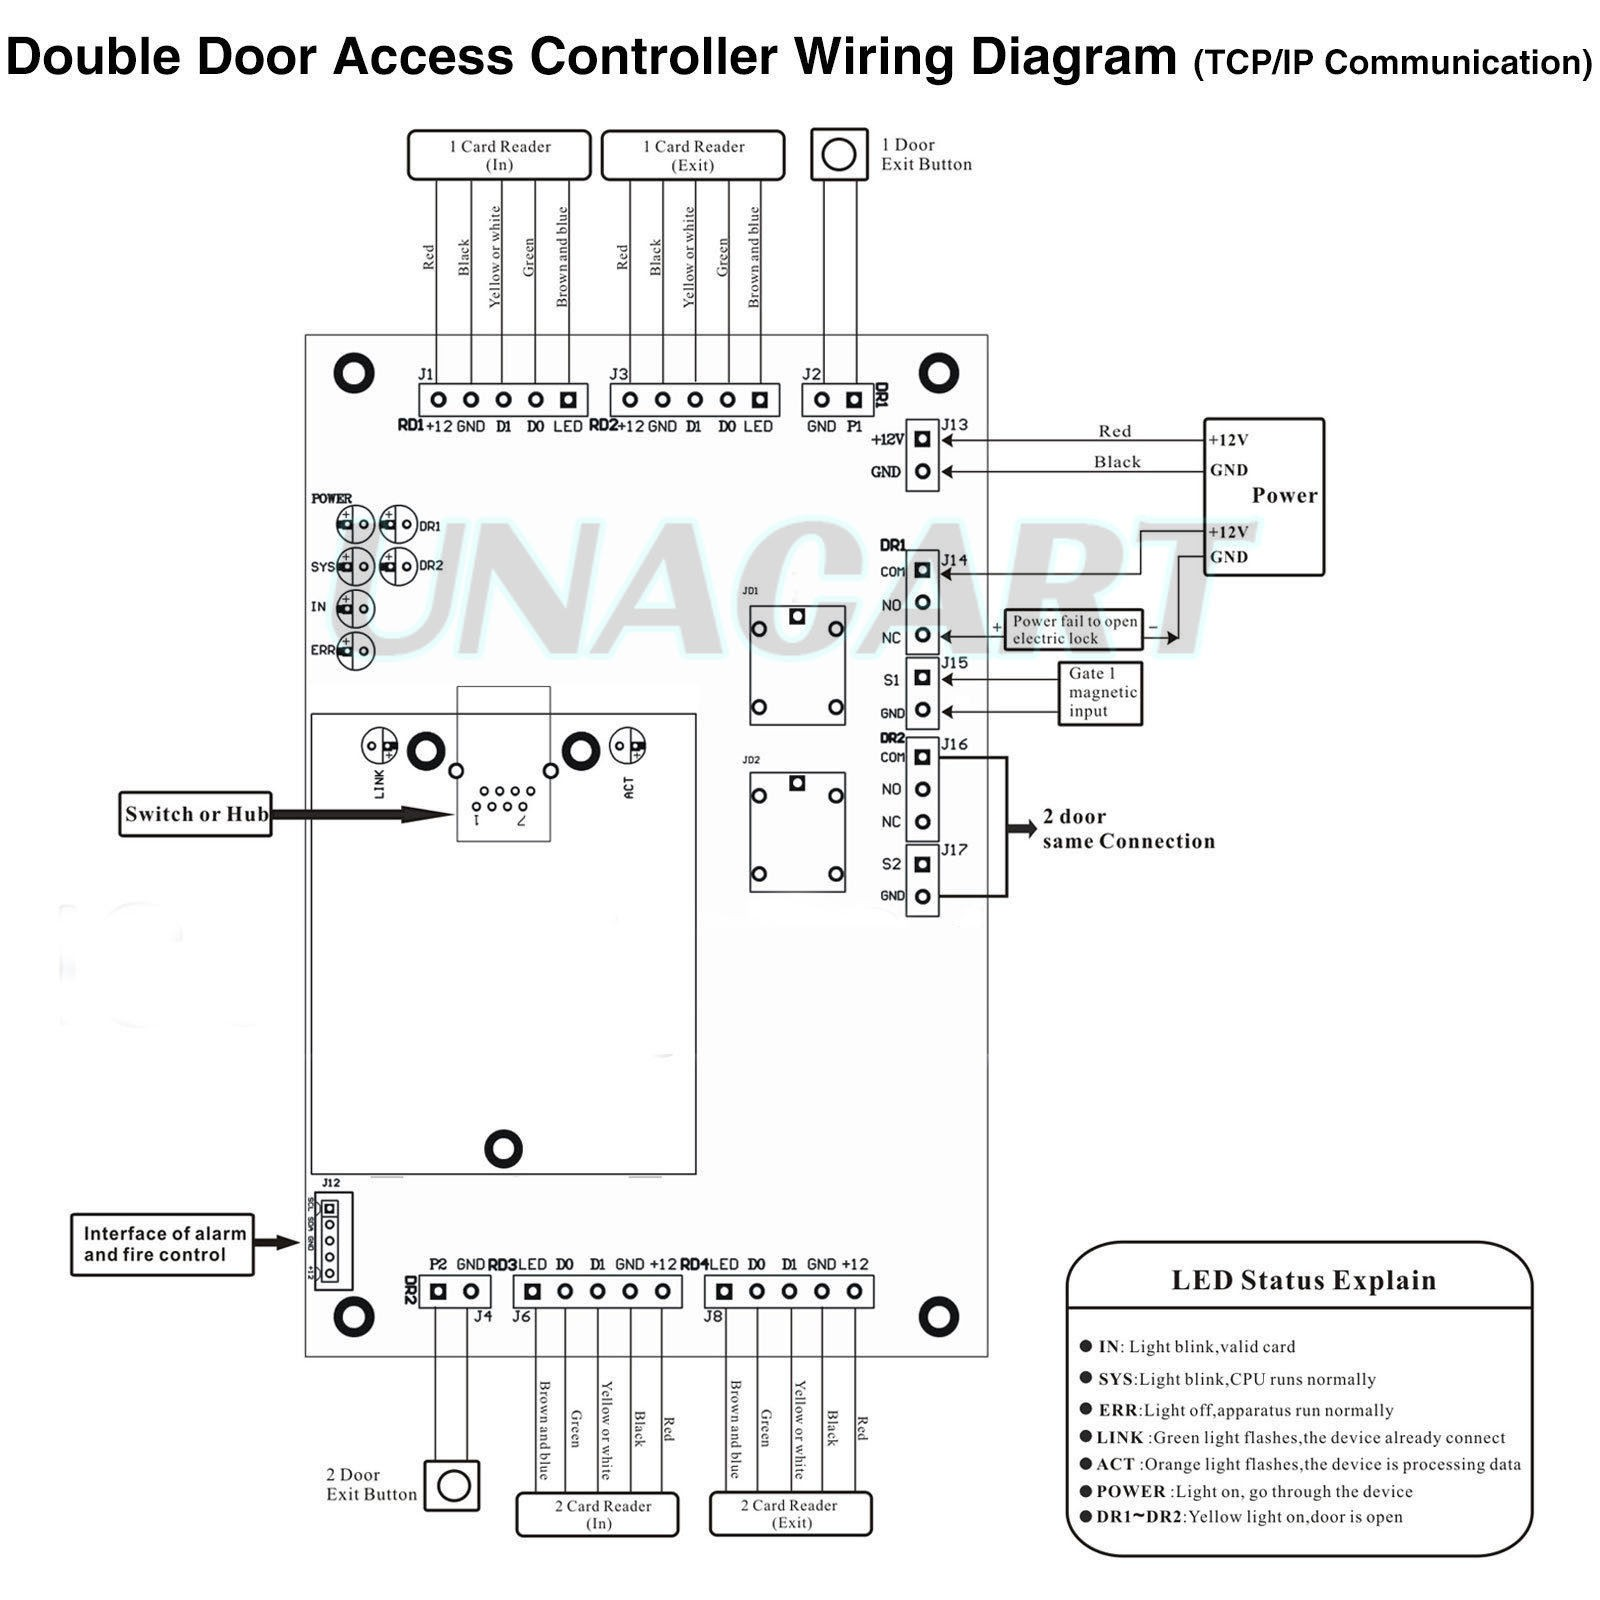 26 bit TCP IP Network Access Control Board Panel Controller for 2